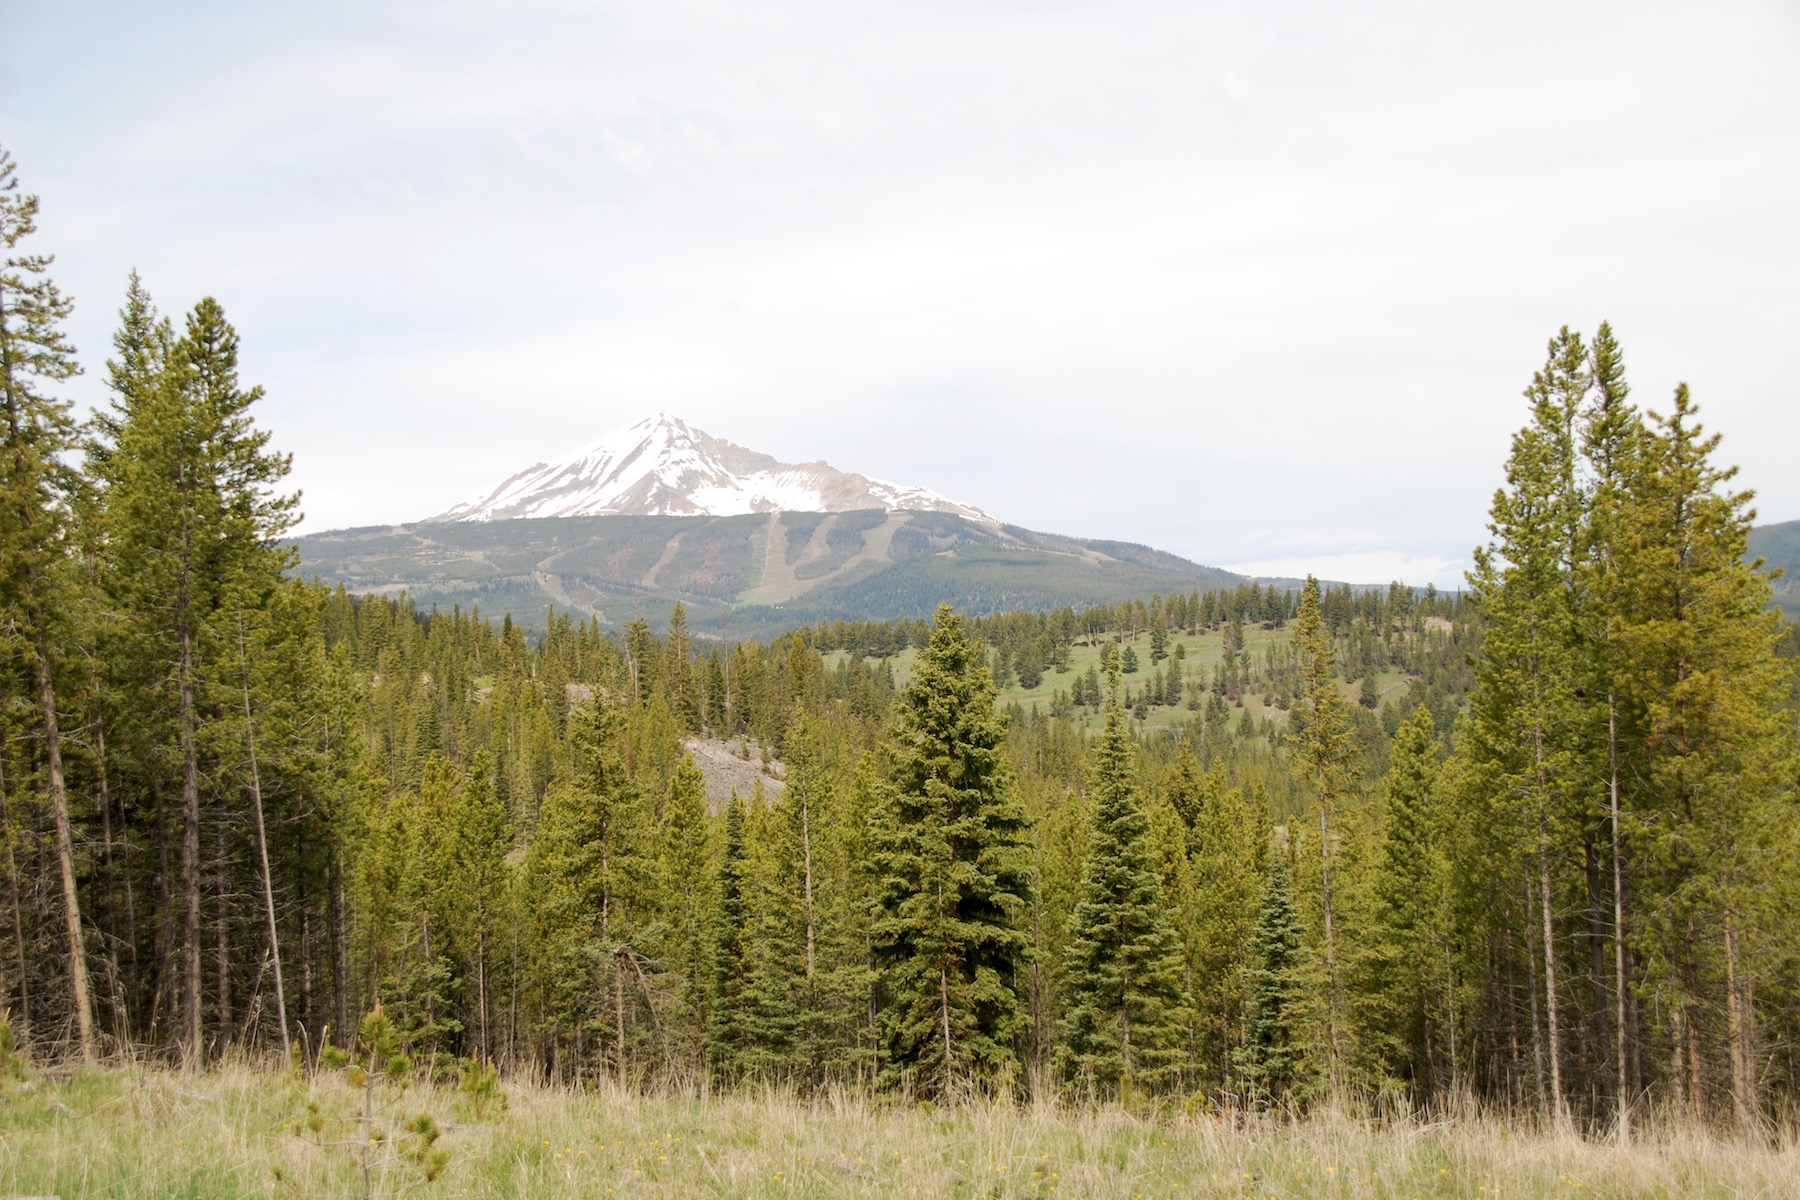 Additional photo for property listing at TBD Michener Creek, Big Sky Michener Creek Rd, Sec 7 Big Sky, Montana 59716 United States